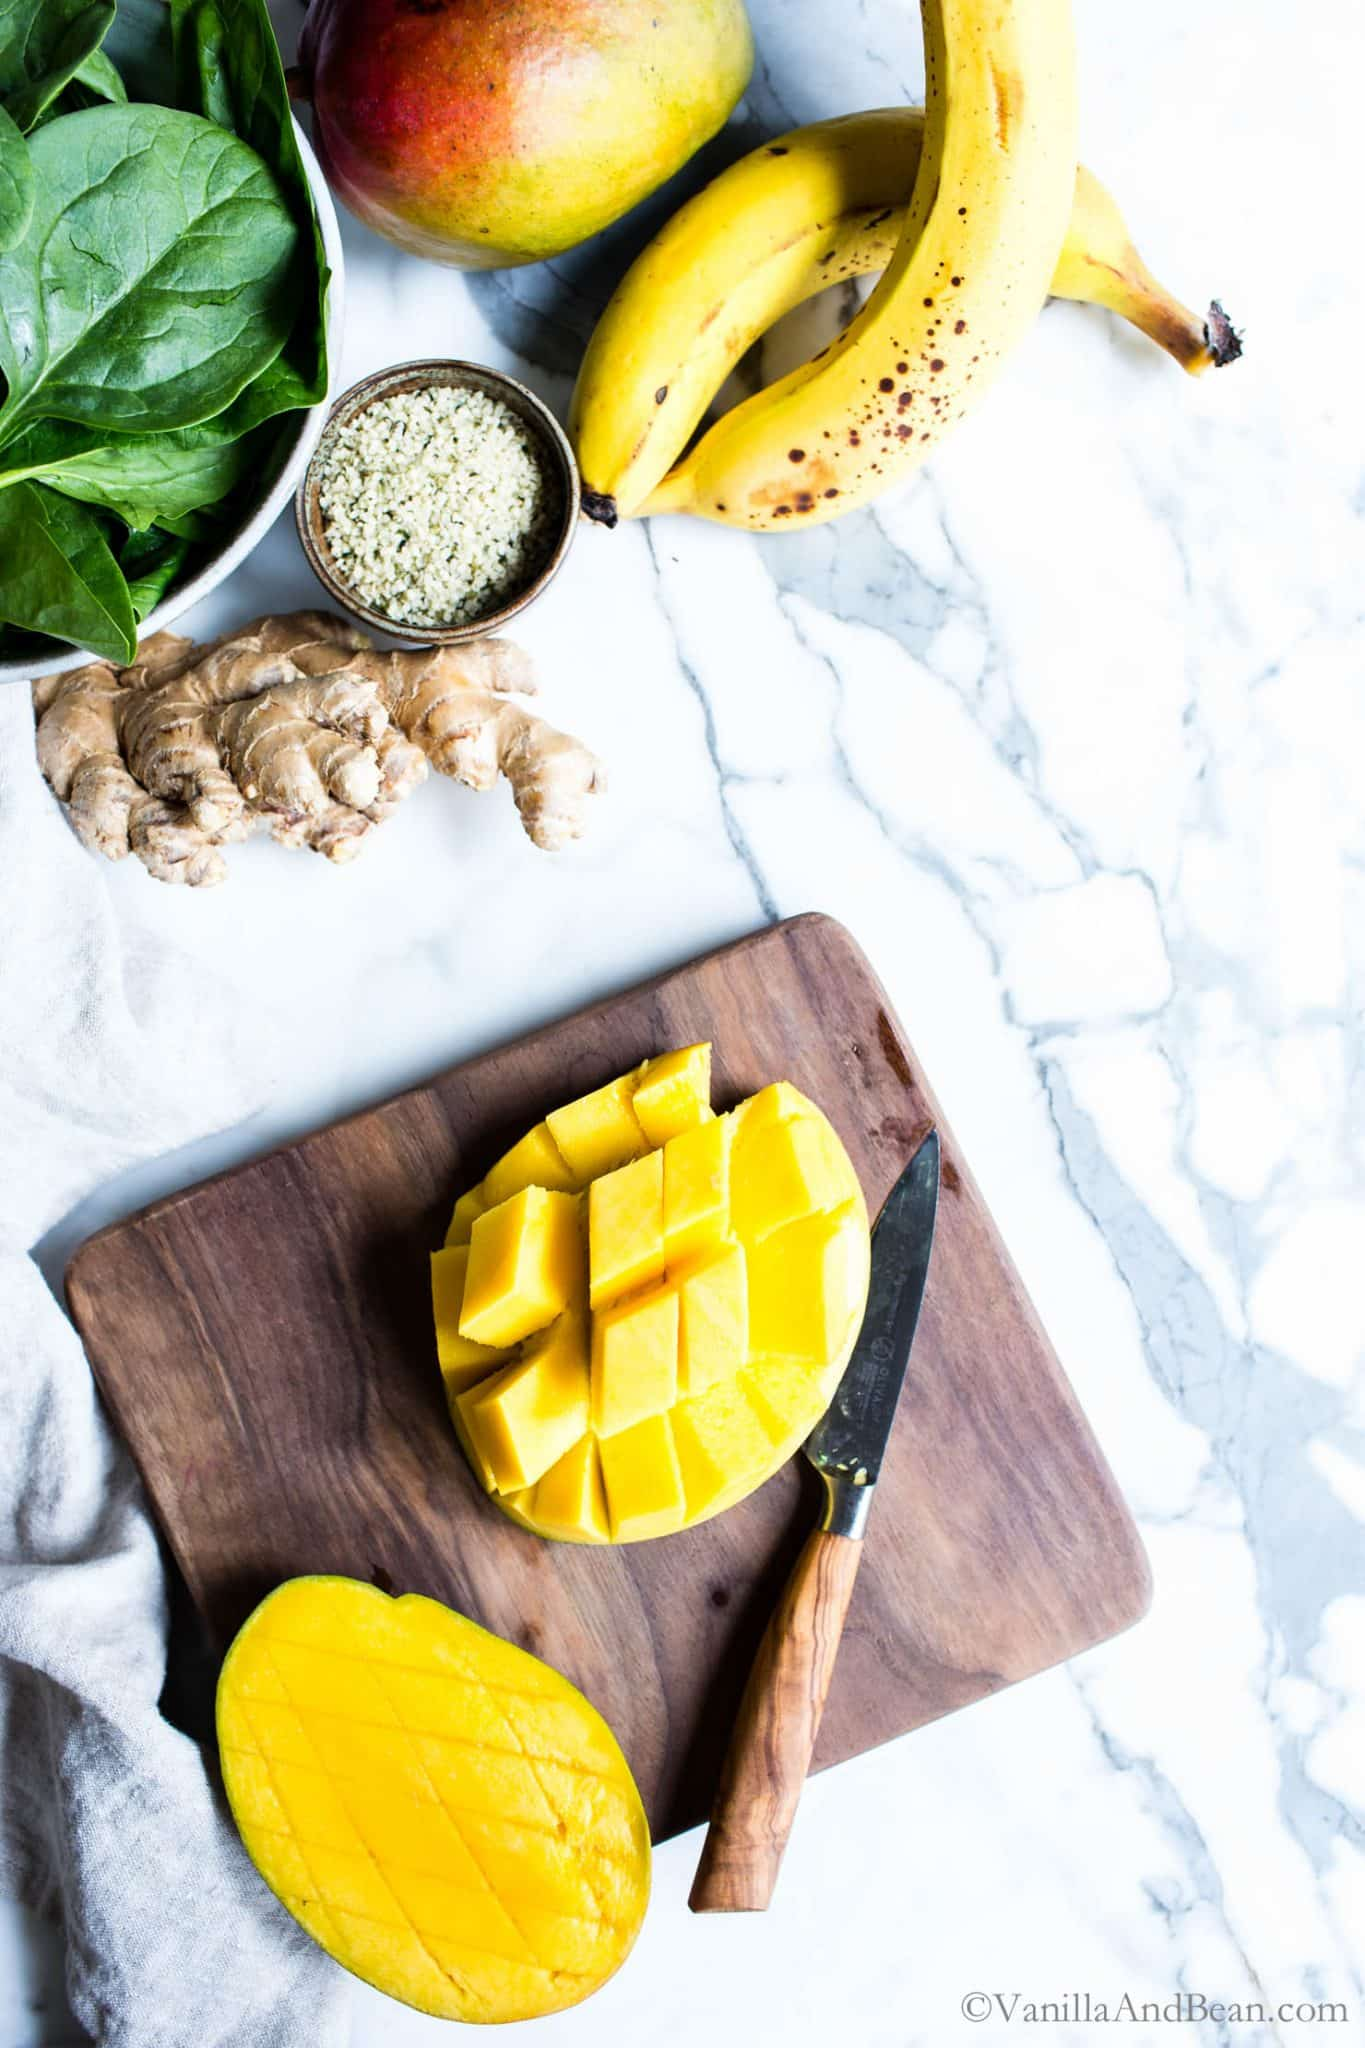 Cutting a mango on a cutting board for Mango Banana Spinach Smoothie.